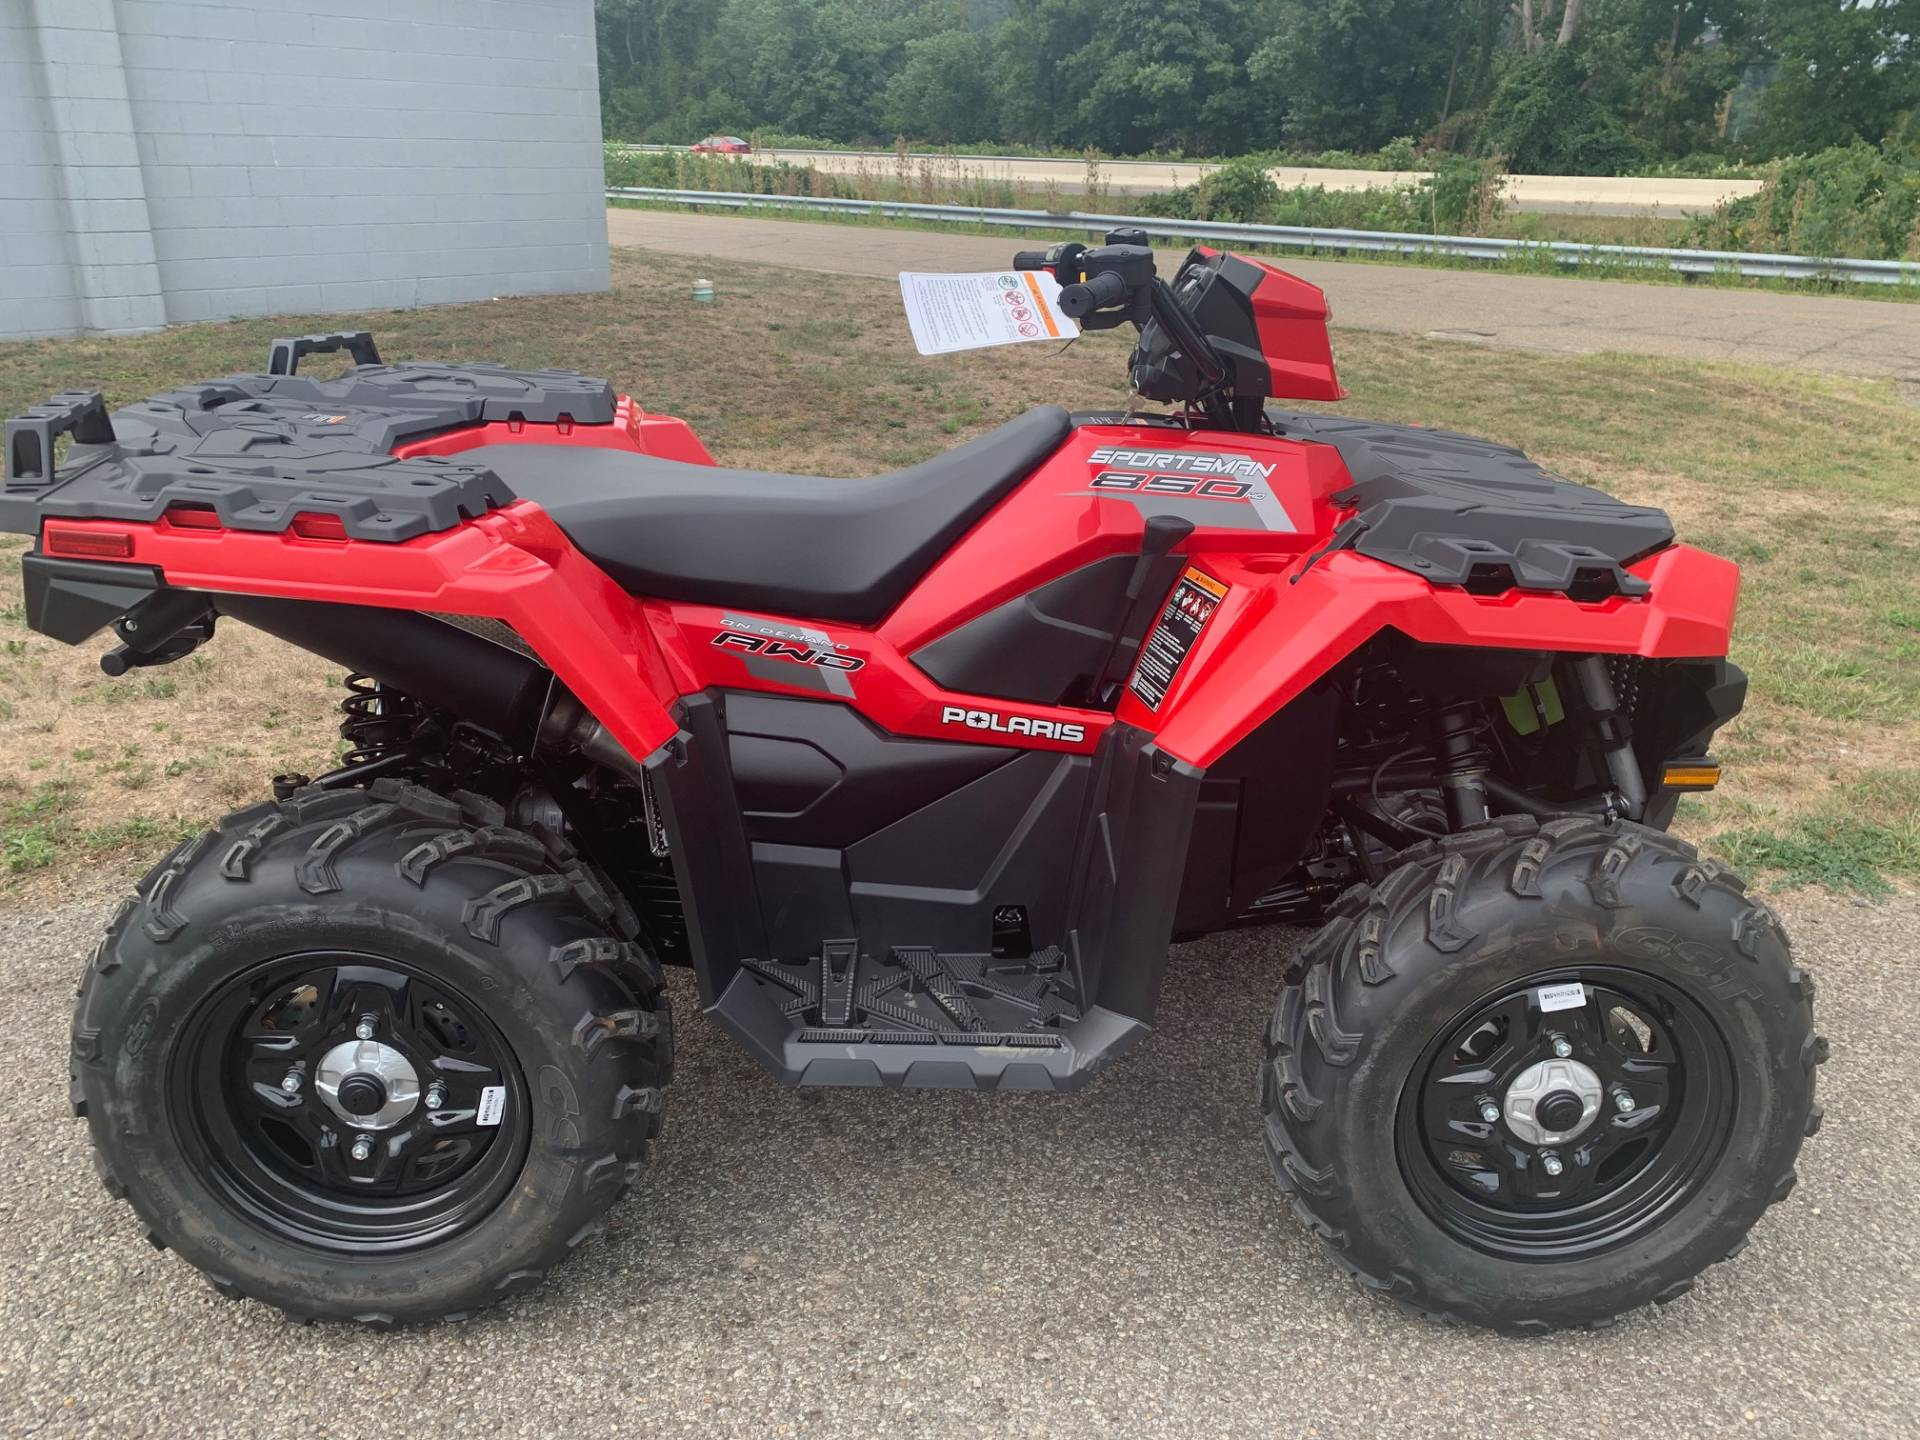 2020 Polaris Sportsman 850 in Brilliant, Ohio - Photo 11